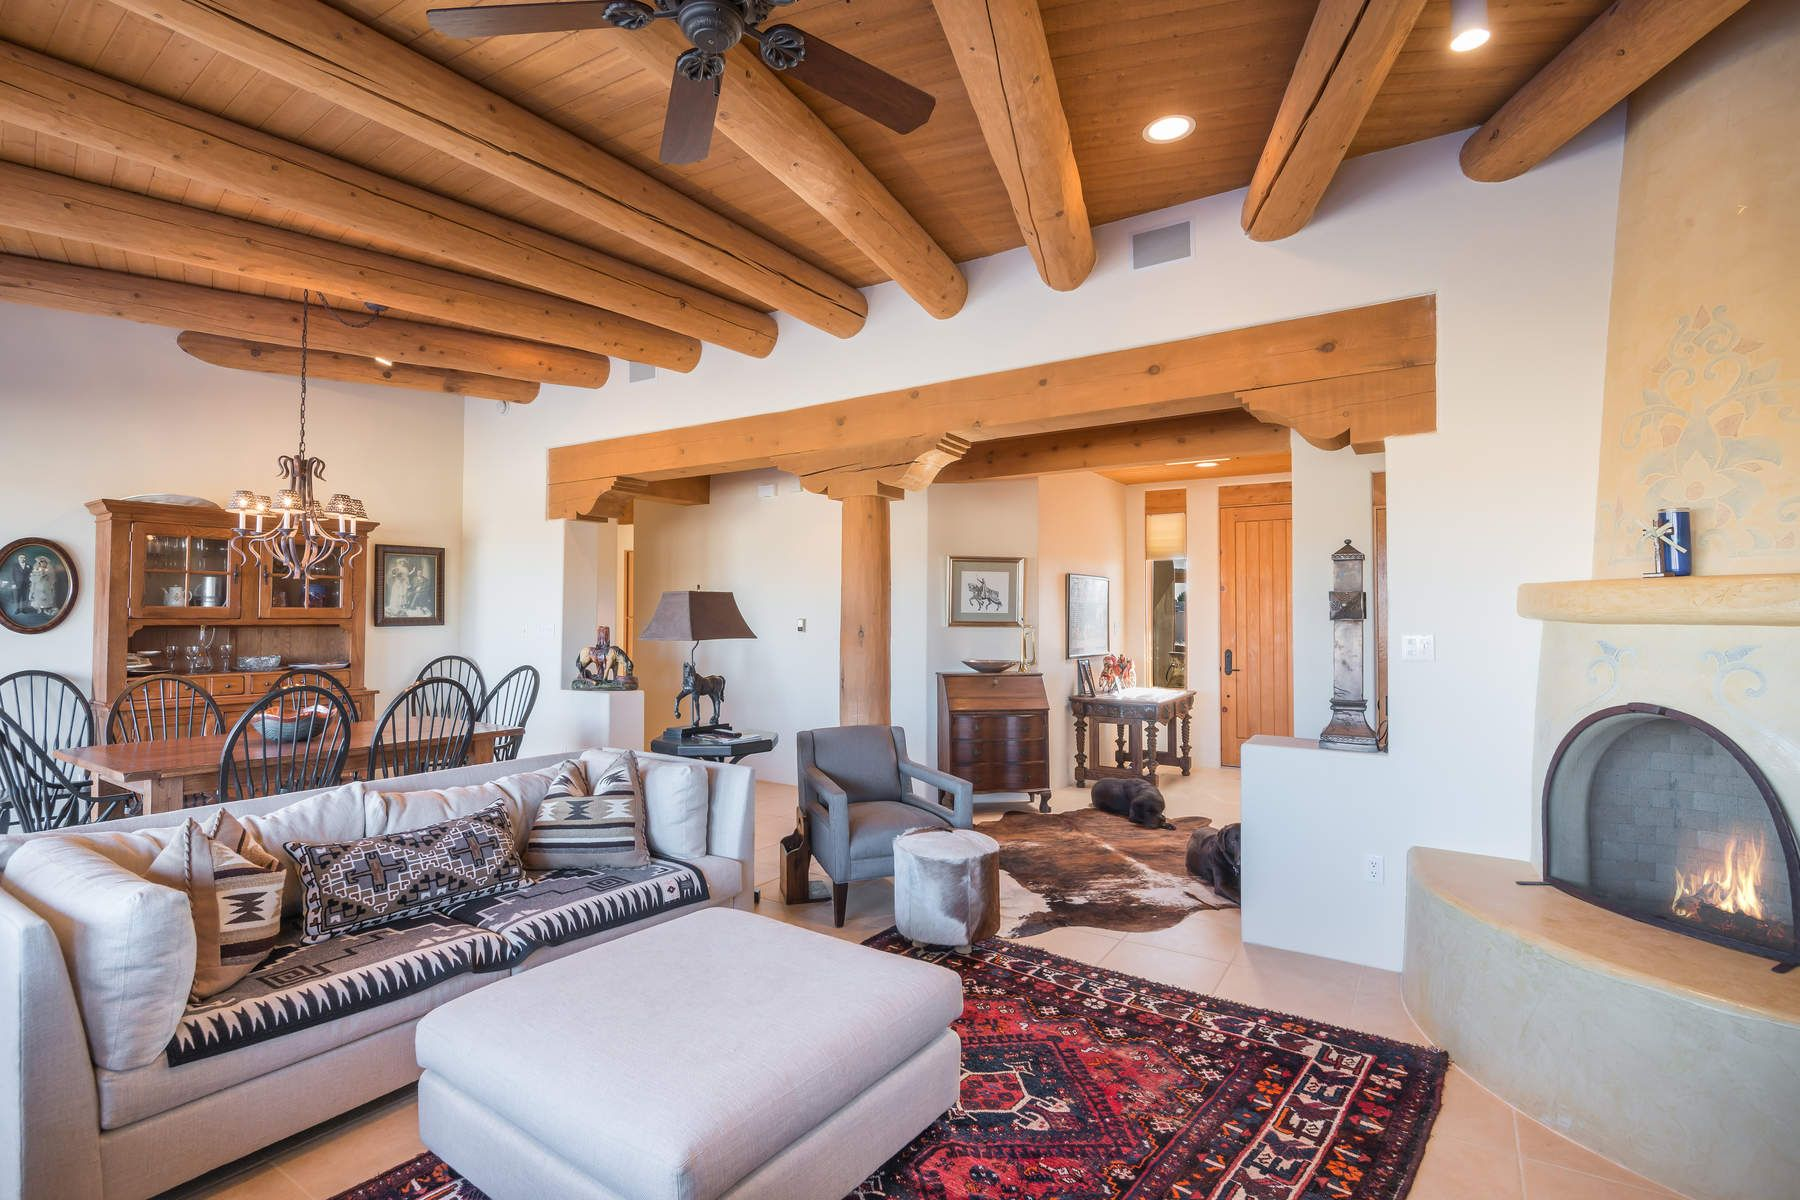 Single Family Home for Sale at 7 Cagua Road 7 Cagua Rd, Eldorado, Santa Fe, New Mexico, 87508 United States